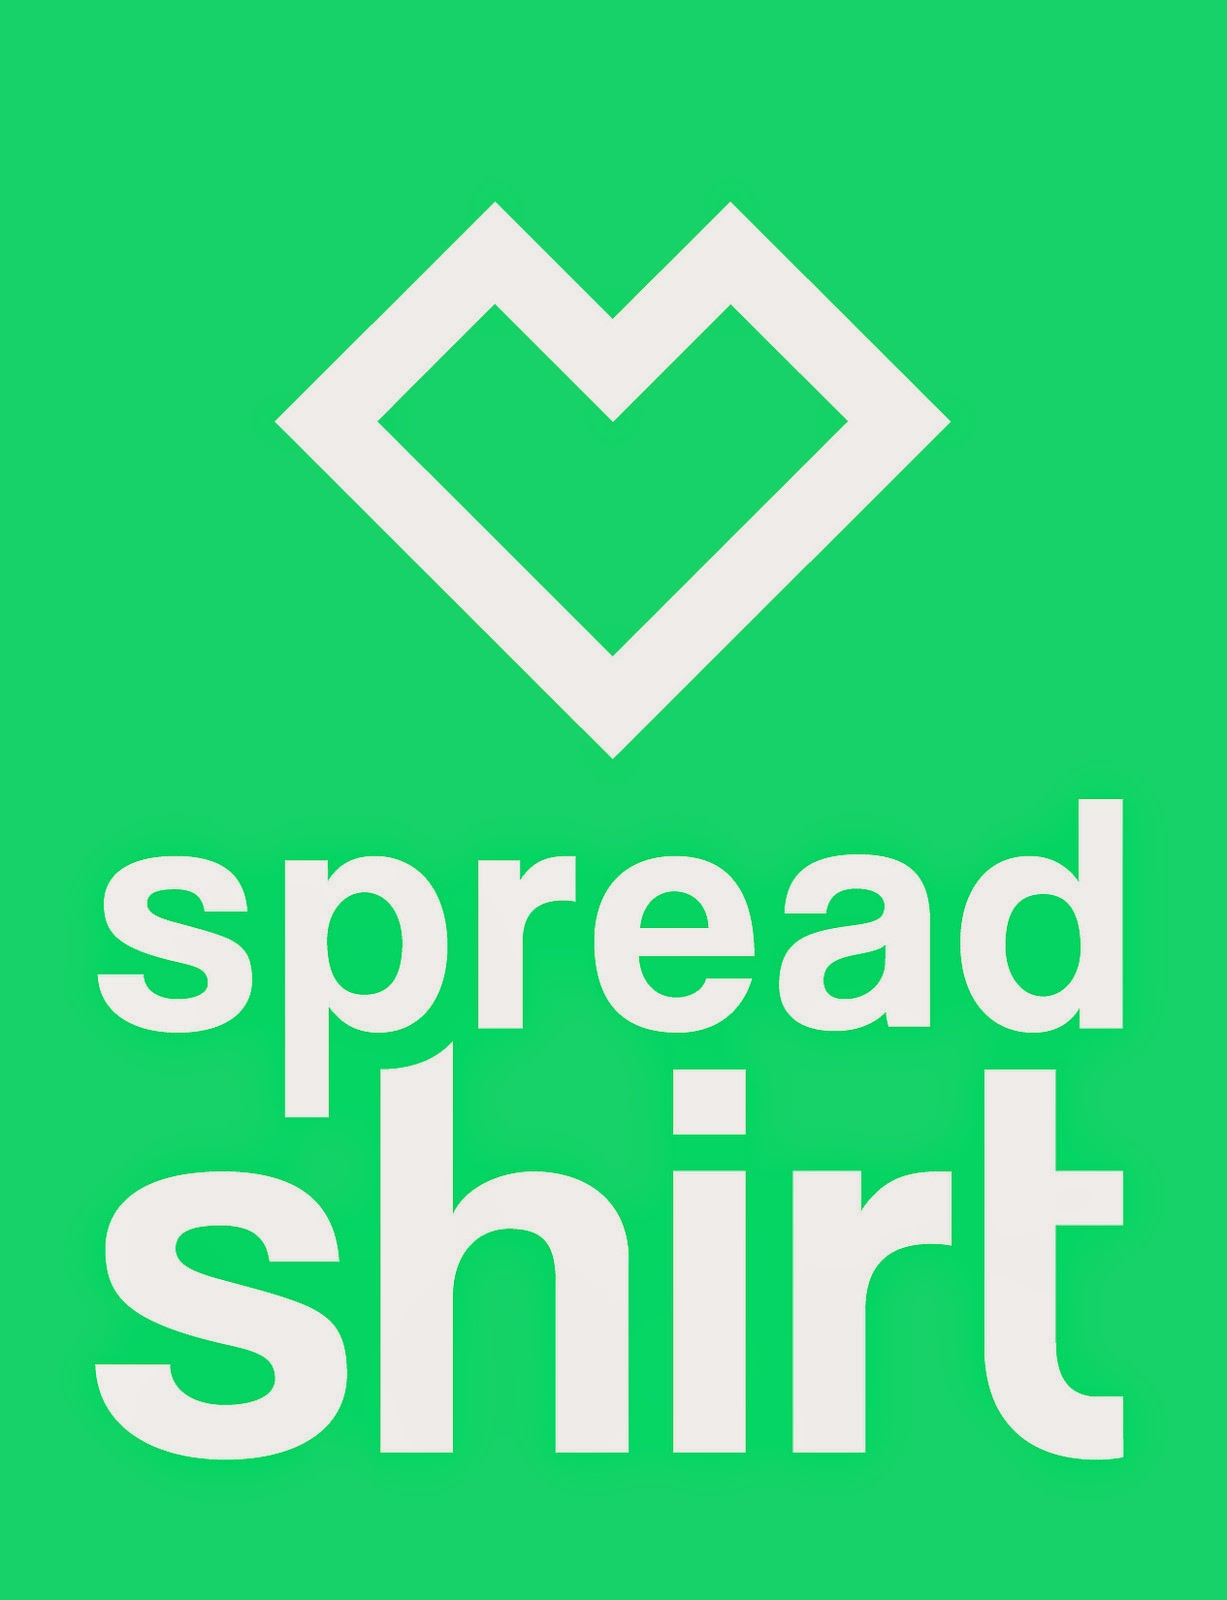 Spread Shirt tolle lustige T-Shirts selbst gestaten